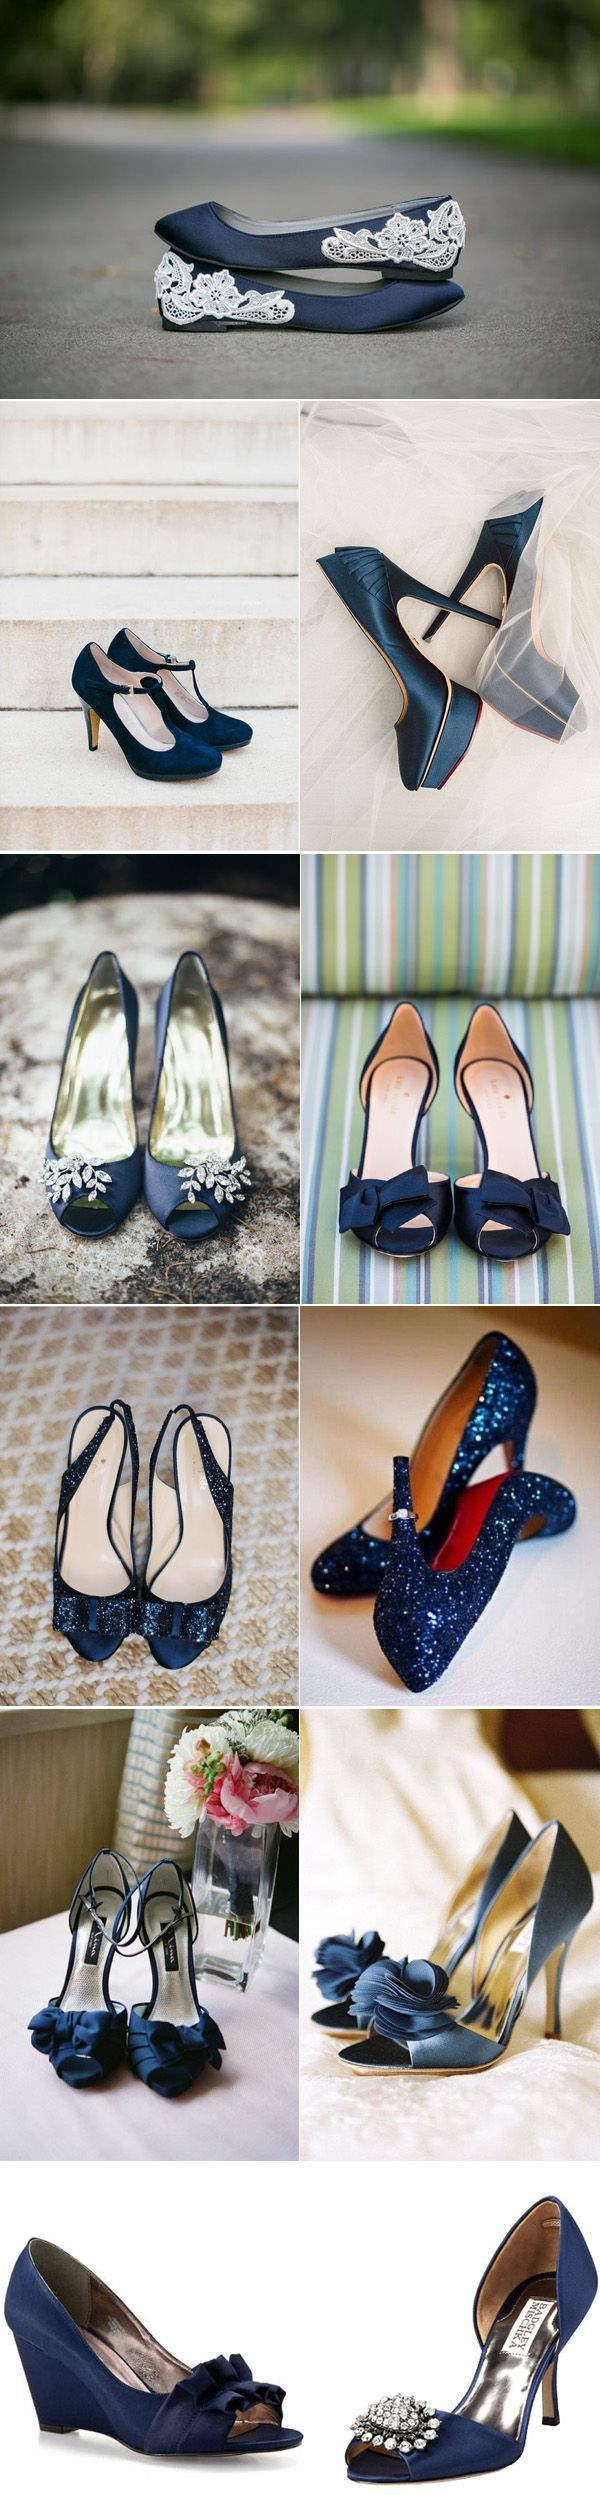 45  Chic Blue Wedding Shoes for Bridal | http://www.deerpearlflowers.com/60-chic-blue-wedding-shoes-for-bridal/ #weddingshoes